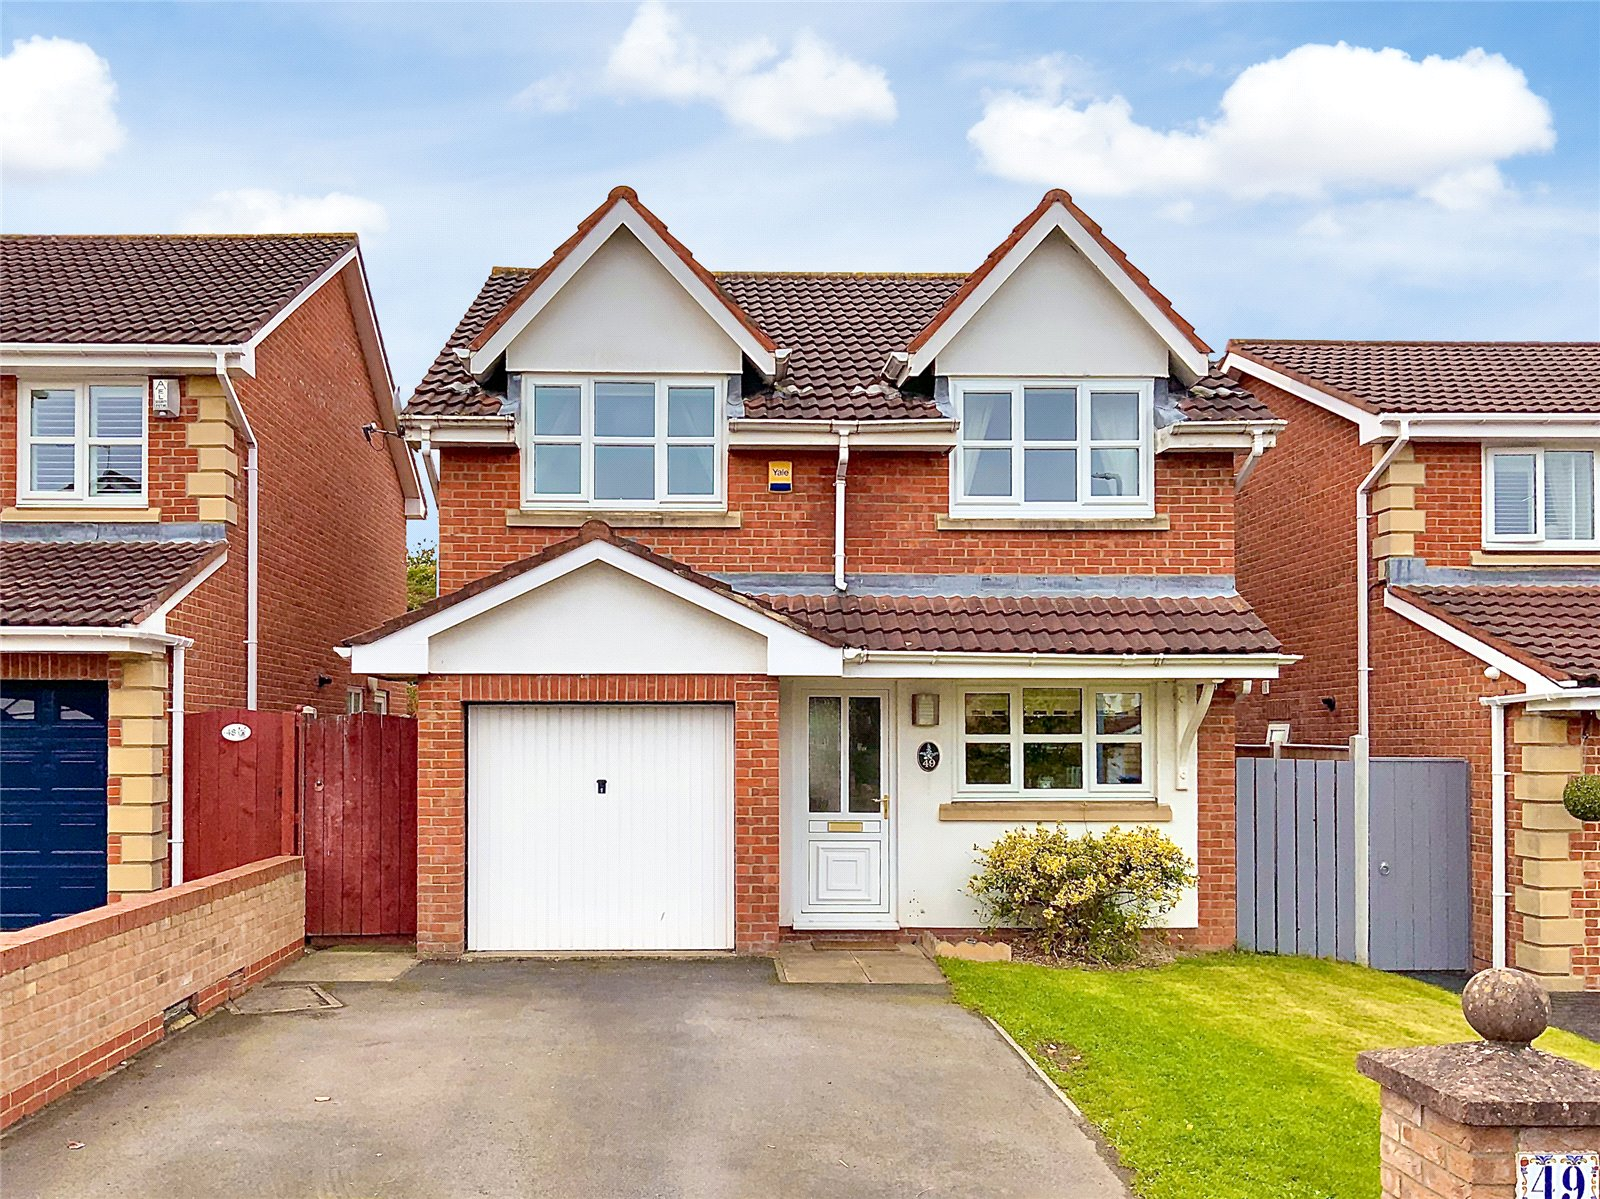 3 bed house for sale in Foxgloves, Coulby Newham  - Property Image 1